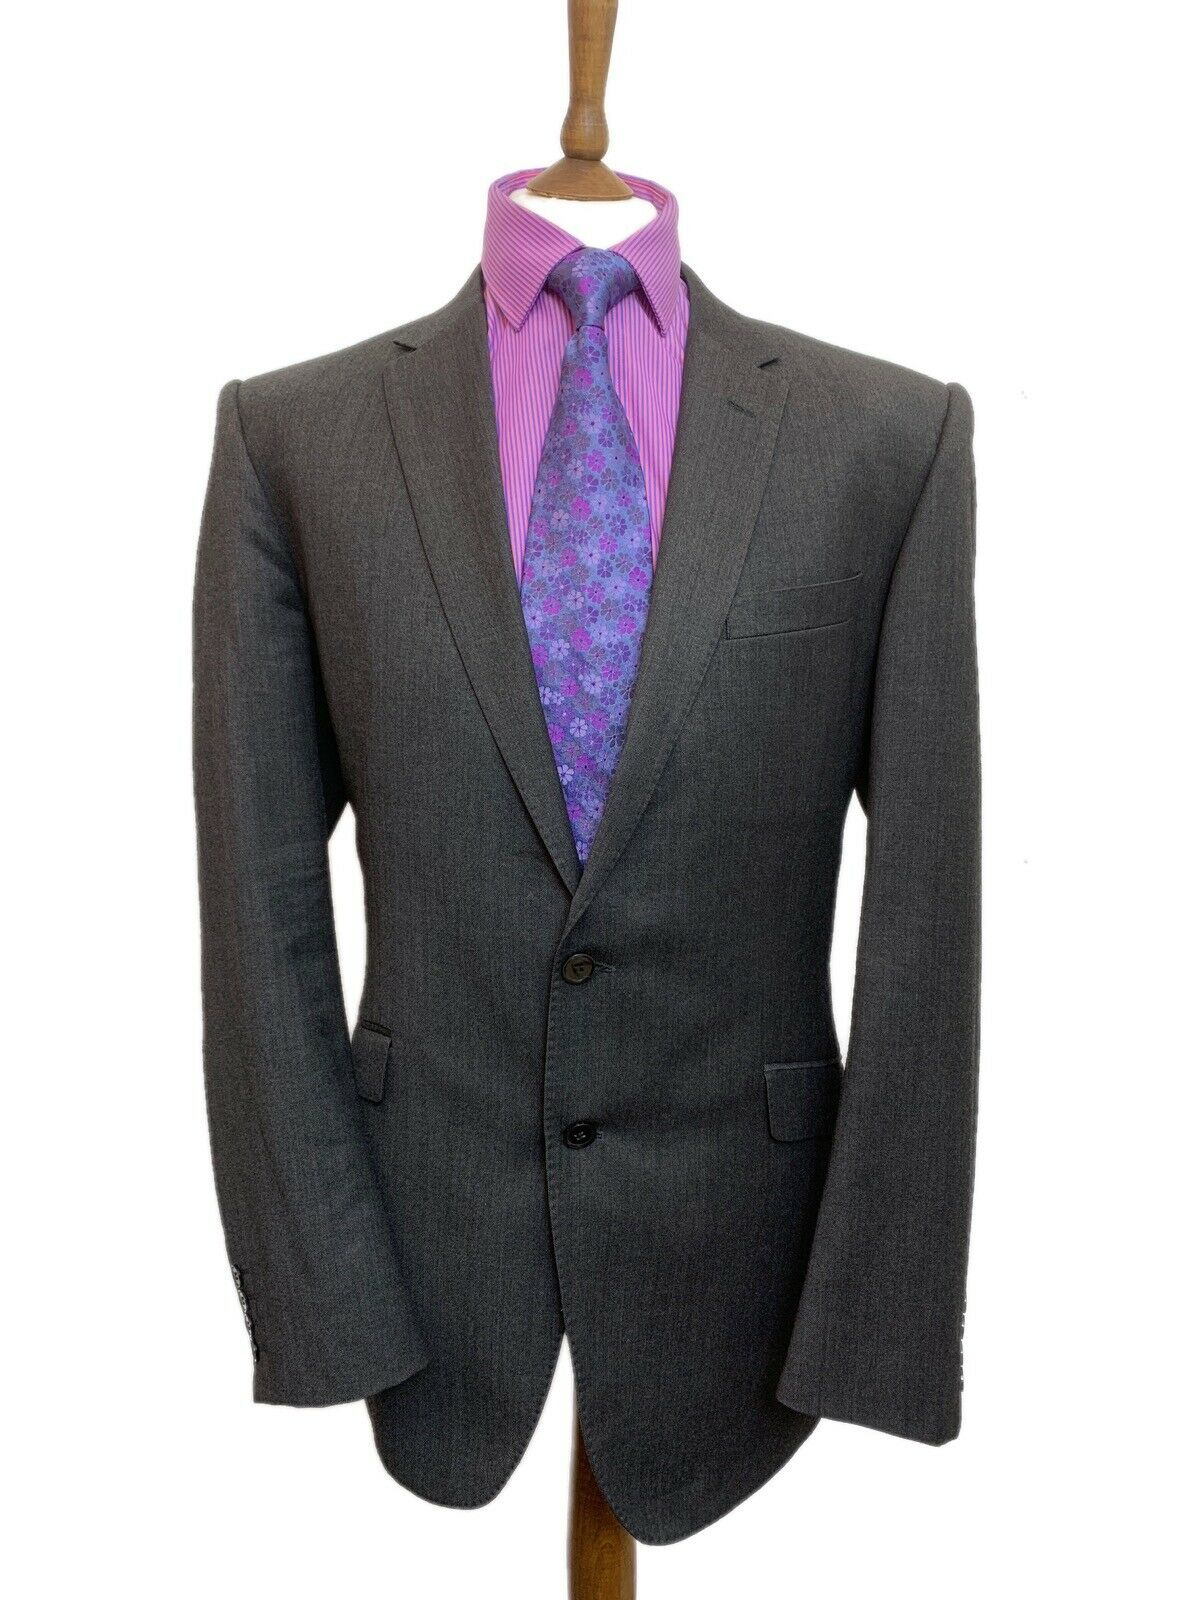 MARKS & SPENCER 44 LONG GREY TAILORED FIT WOOL RICH SUIT W38 L30